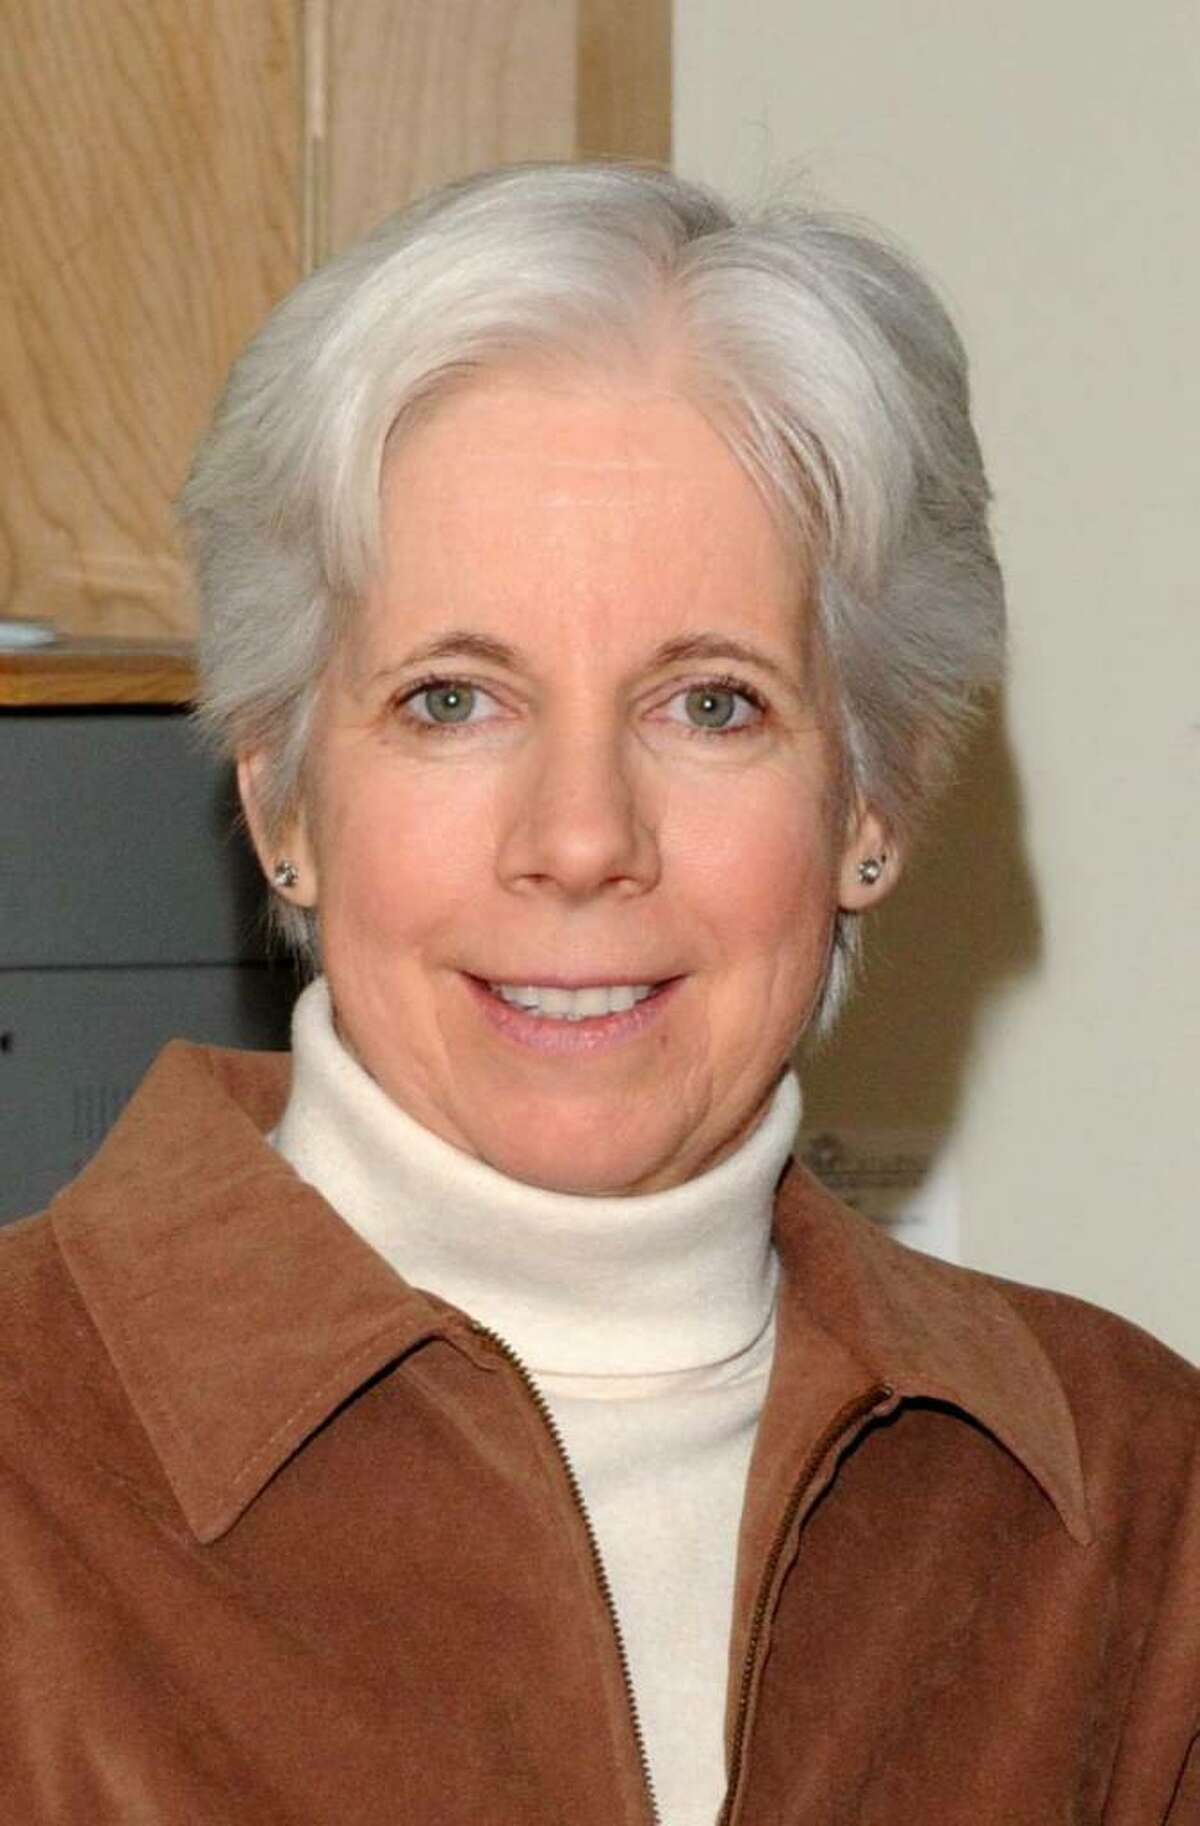 Sue Newton, owner of The Barn Gallery & Framing, in New Fairfield, CT, at her gallery, on Friday, Jan. 29, 2010.